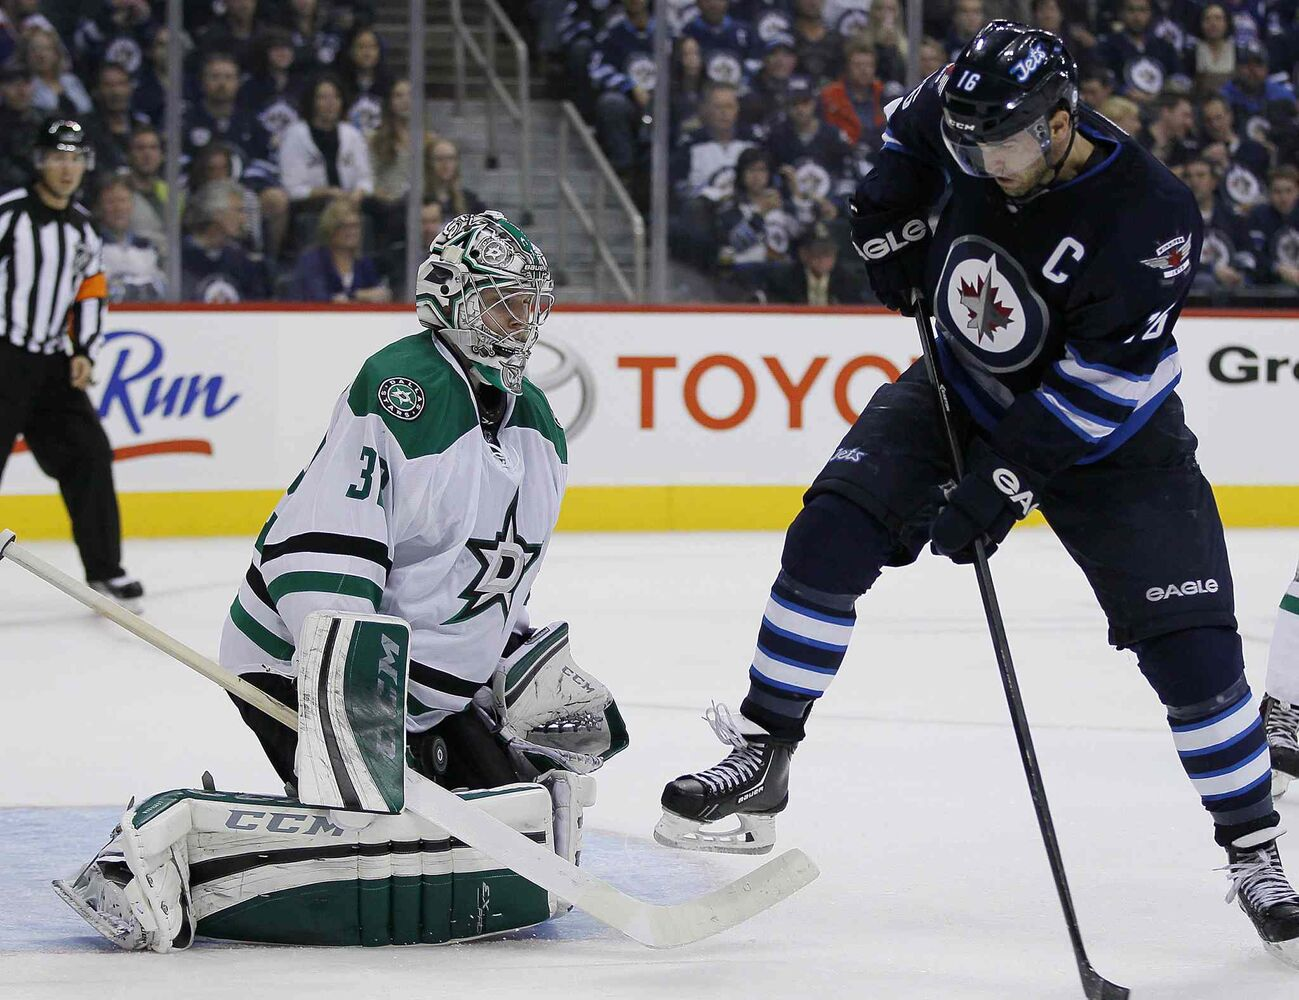 Andrew Ladd's deflection is stopped by Dallas Stars goaltender Kari Lehtonen (32) during the second period.